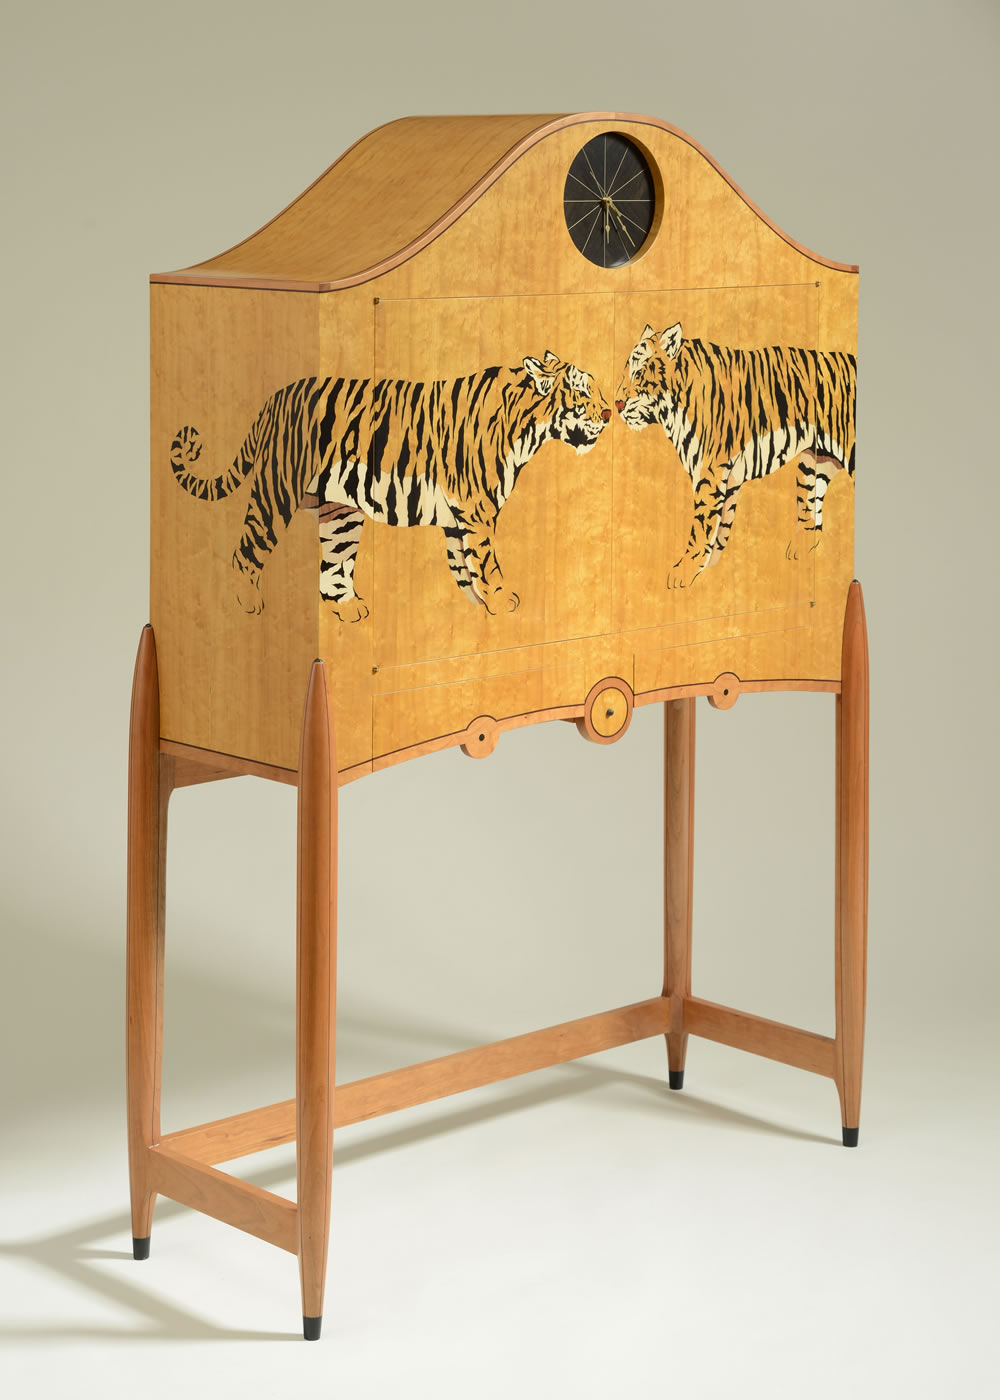 chairs images theater for home animal – silas kopf woodworking inlaid wood marquetry studio furniture